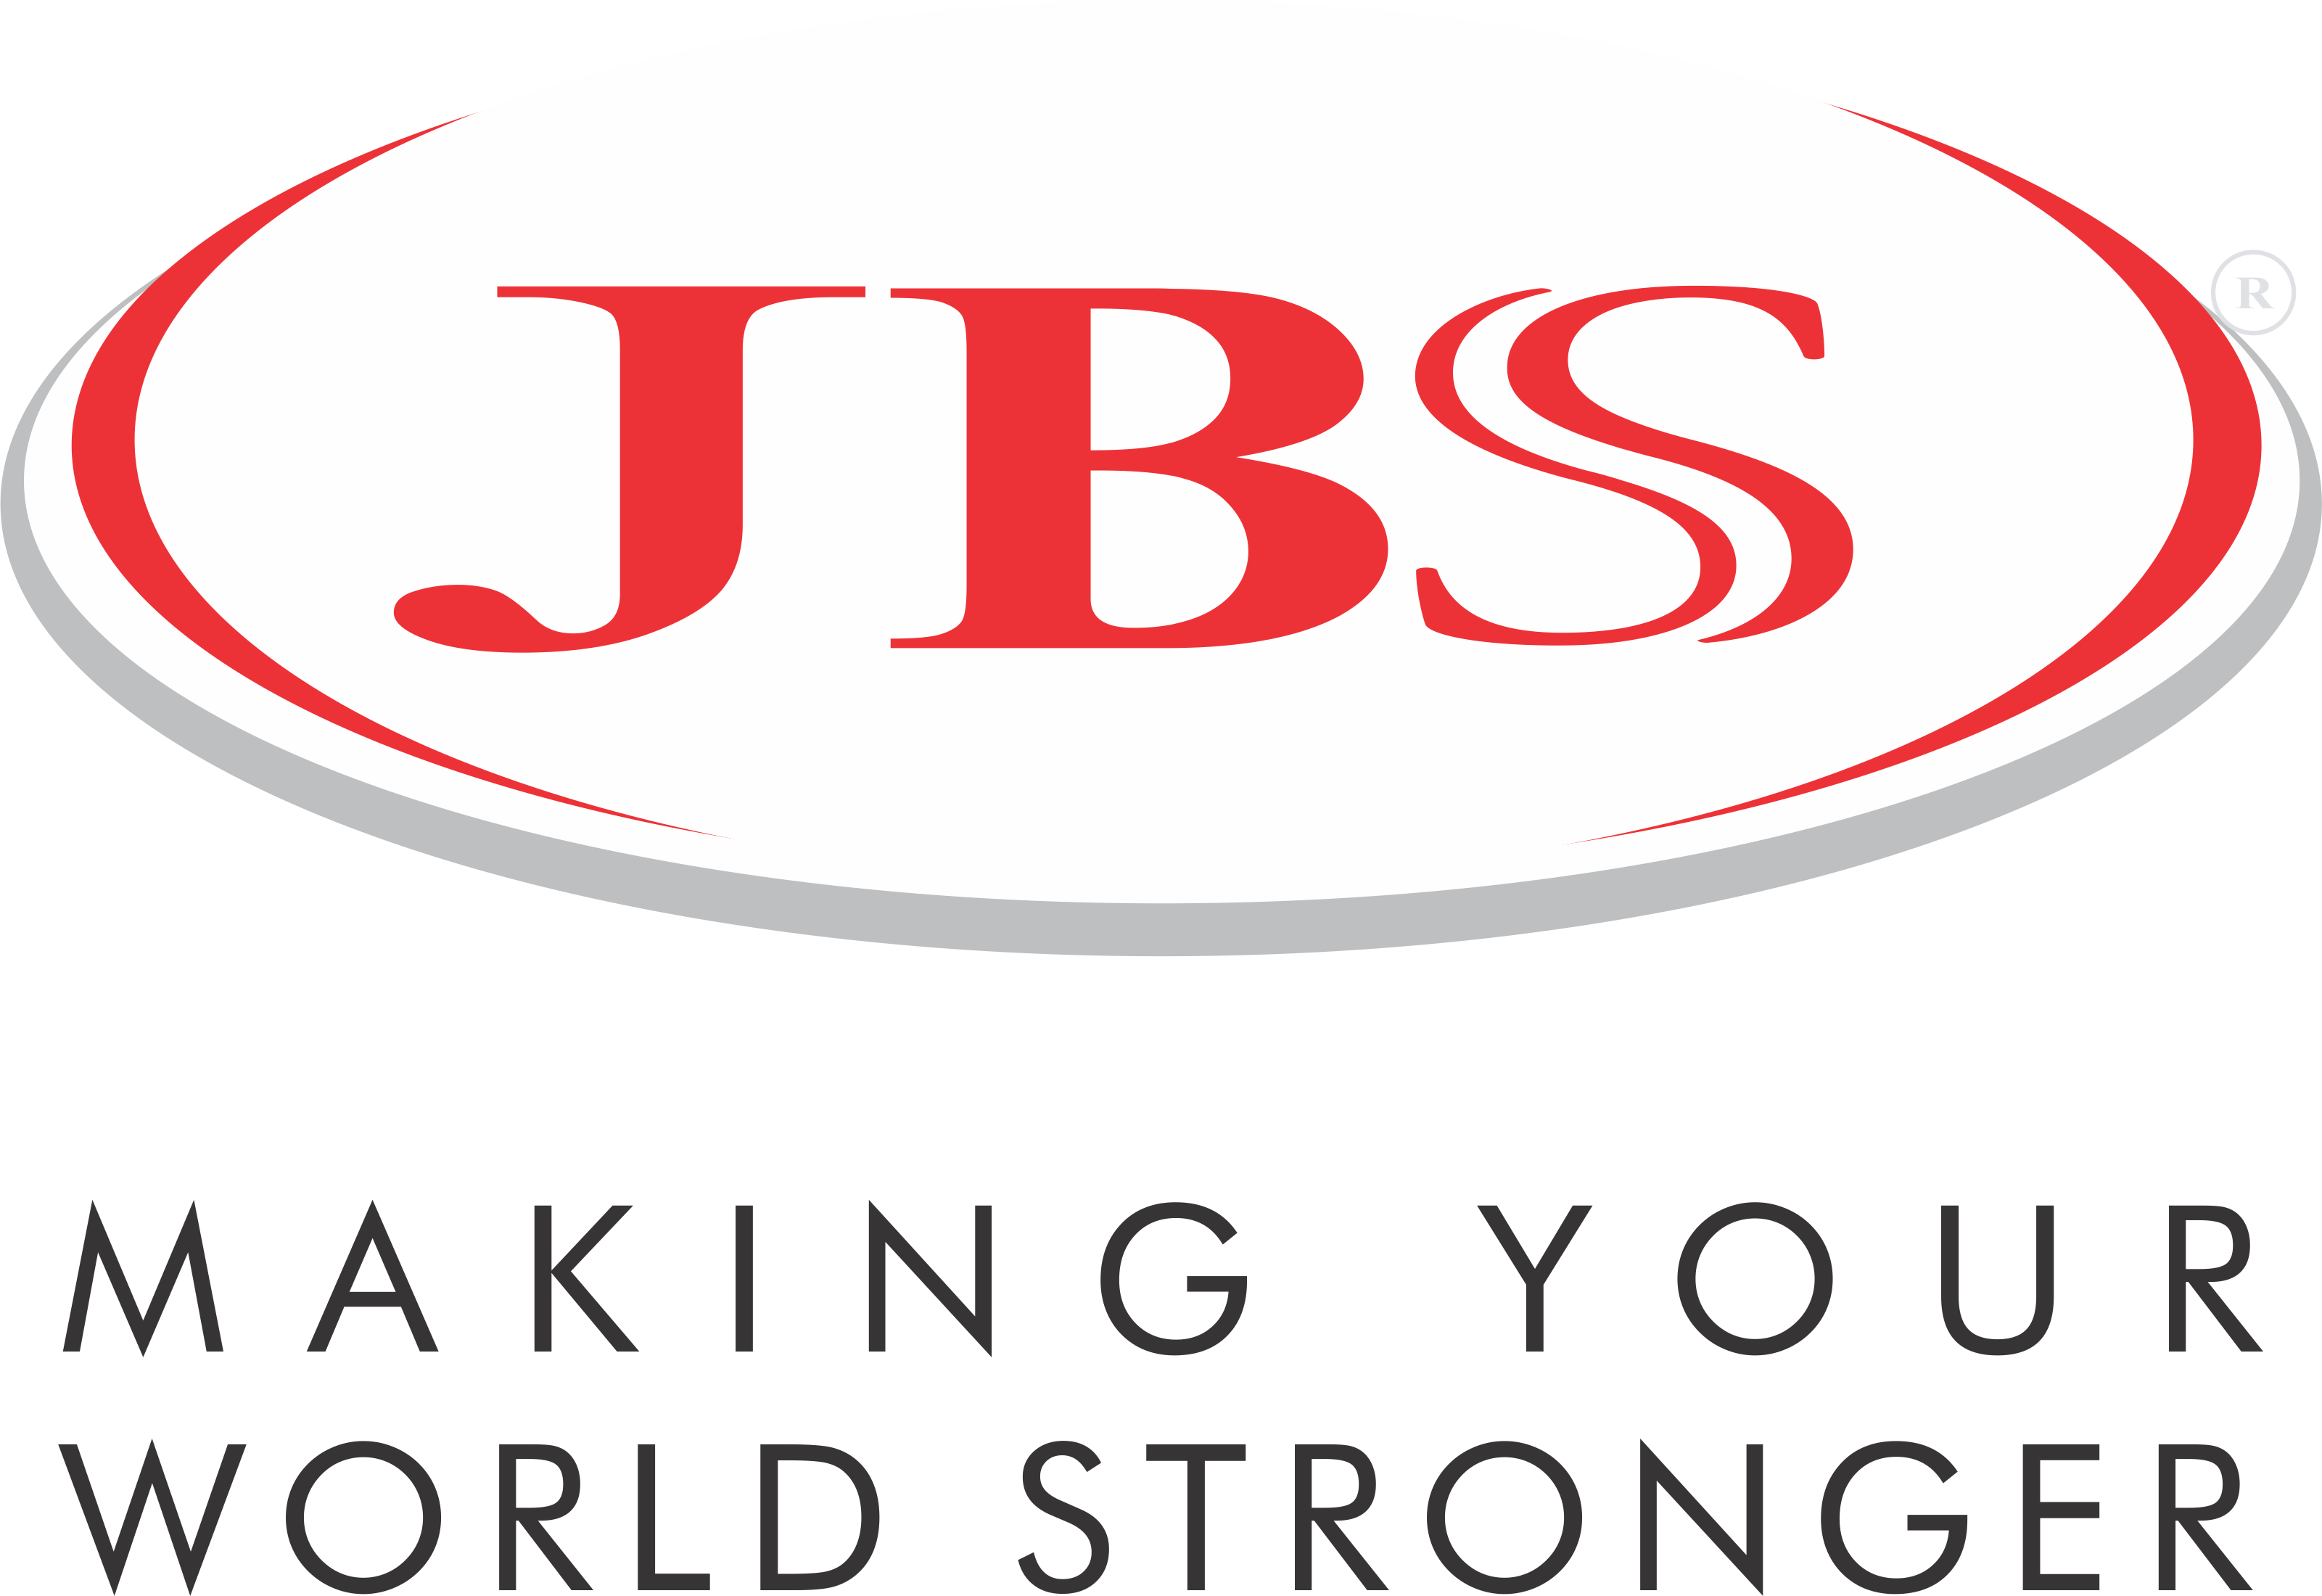 JBS P1 Production Facility Audit